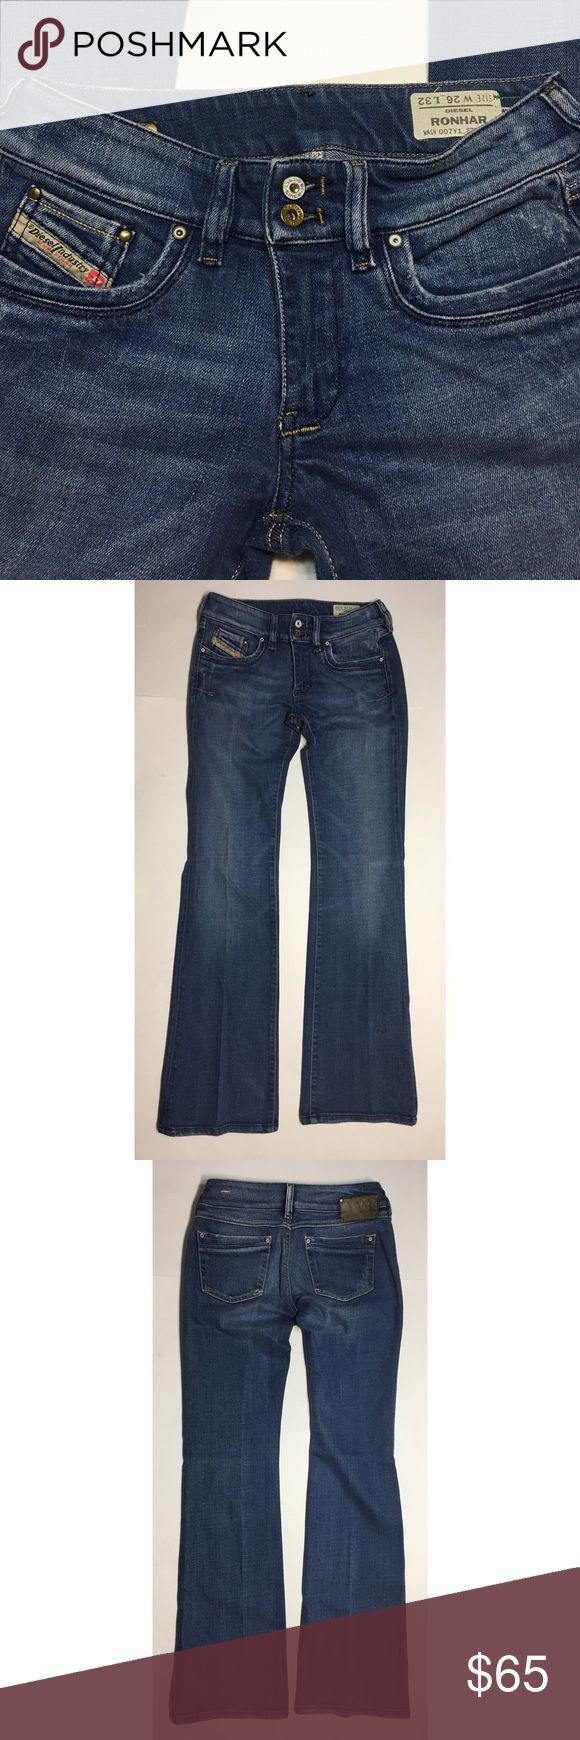 DIESEL Ronhar Jeans • Sz 26 x 32 Diesel RONHAR wash 007Y1 stretch Womens Jeans. Size 26 x 32. Jeans are in great condition, they are really nice jeans with amazing fabric materials. Quality is what Diesel jeans are known for. Please look at all the pictures. Ask any questions if you have any.  98% cotton 2% elastan  MADE IN ITALY Diesel Jeans Boot Cut